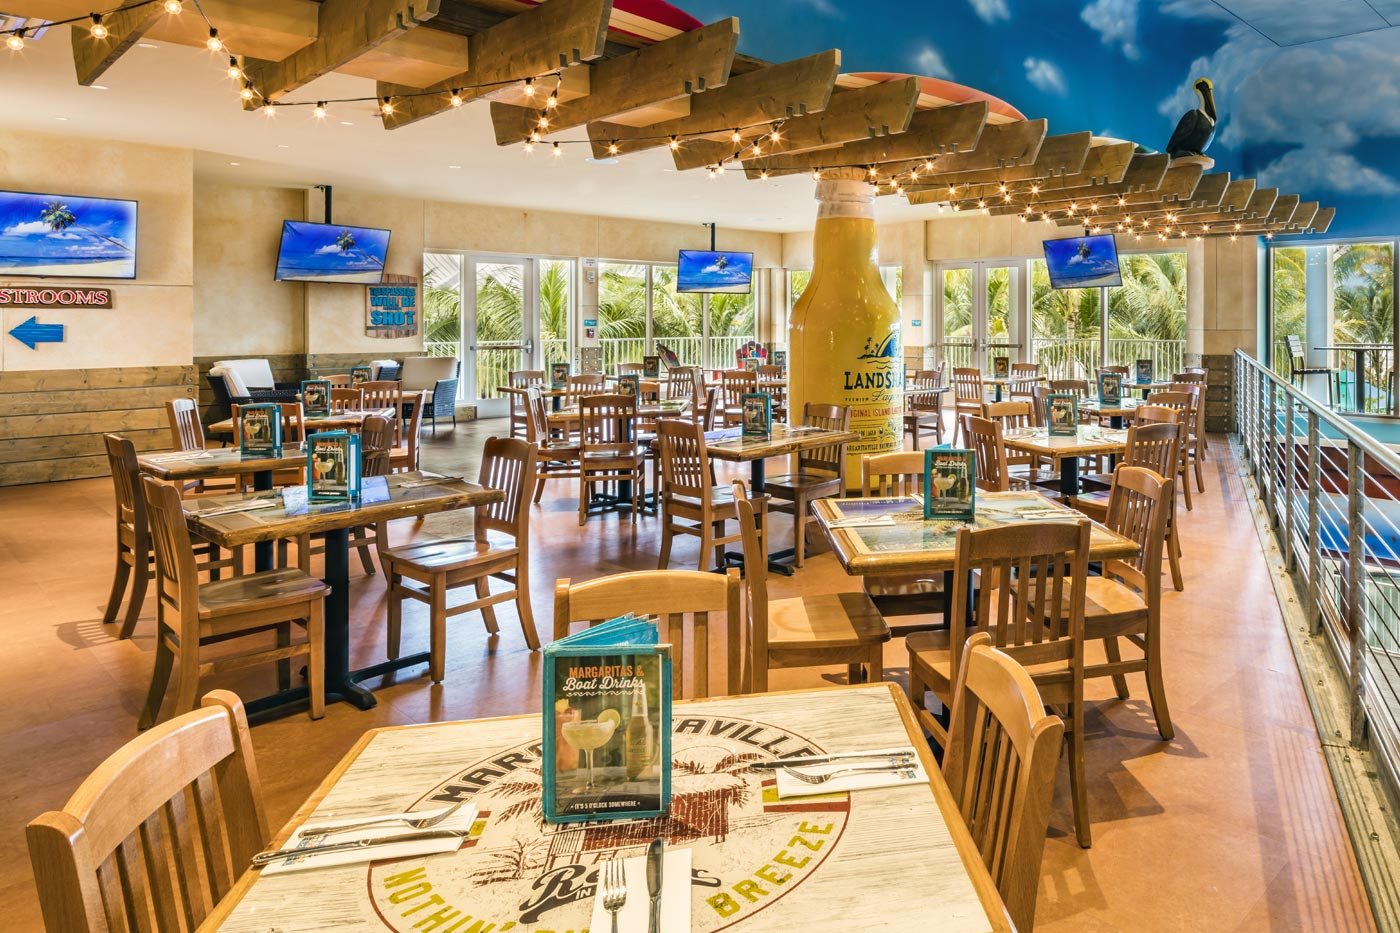 Best Restaurants For Lunch In Hollywood Fl